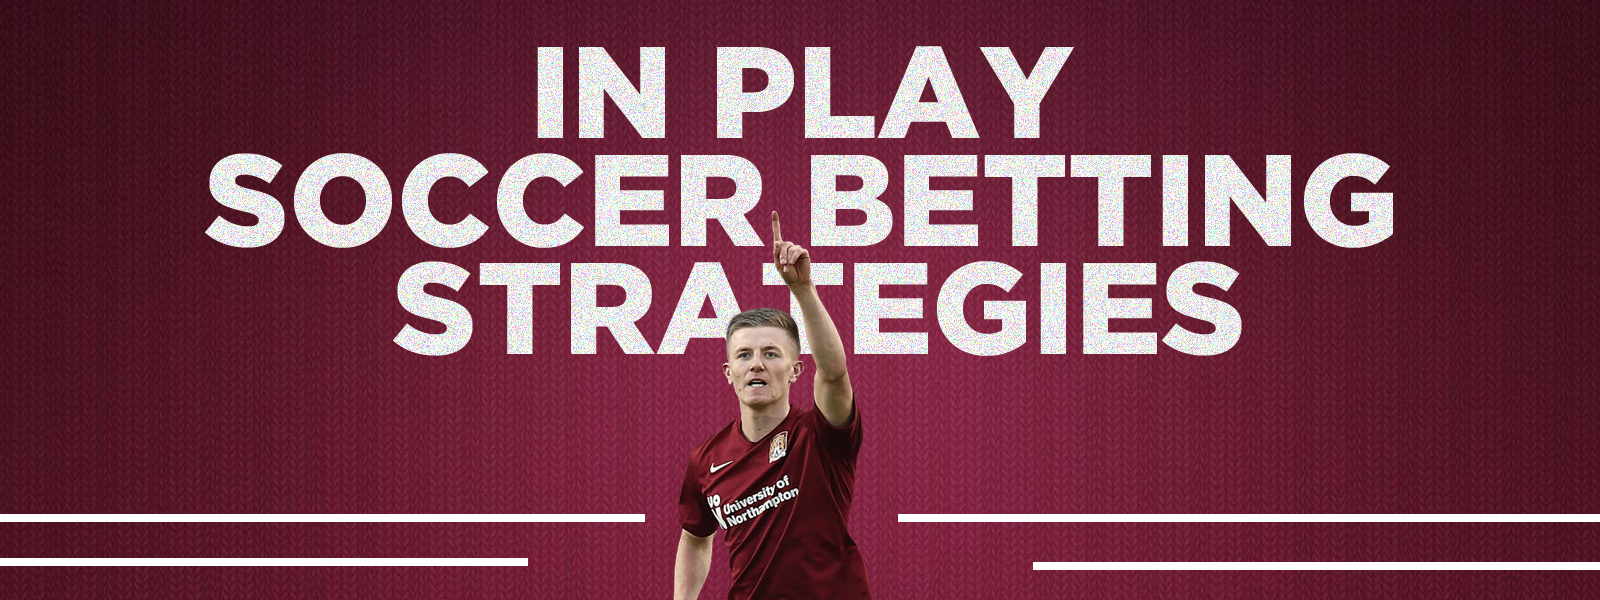 SoccerTipsters Blog | In Play Soccer Betting Strategies